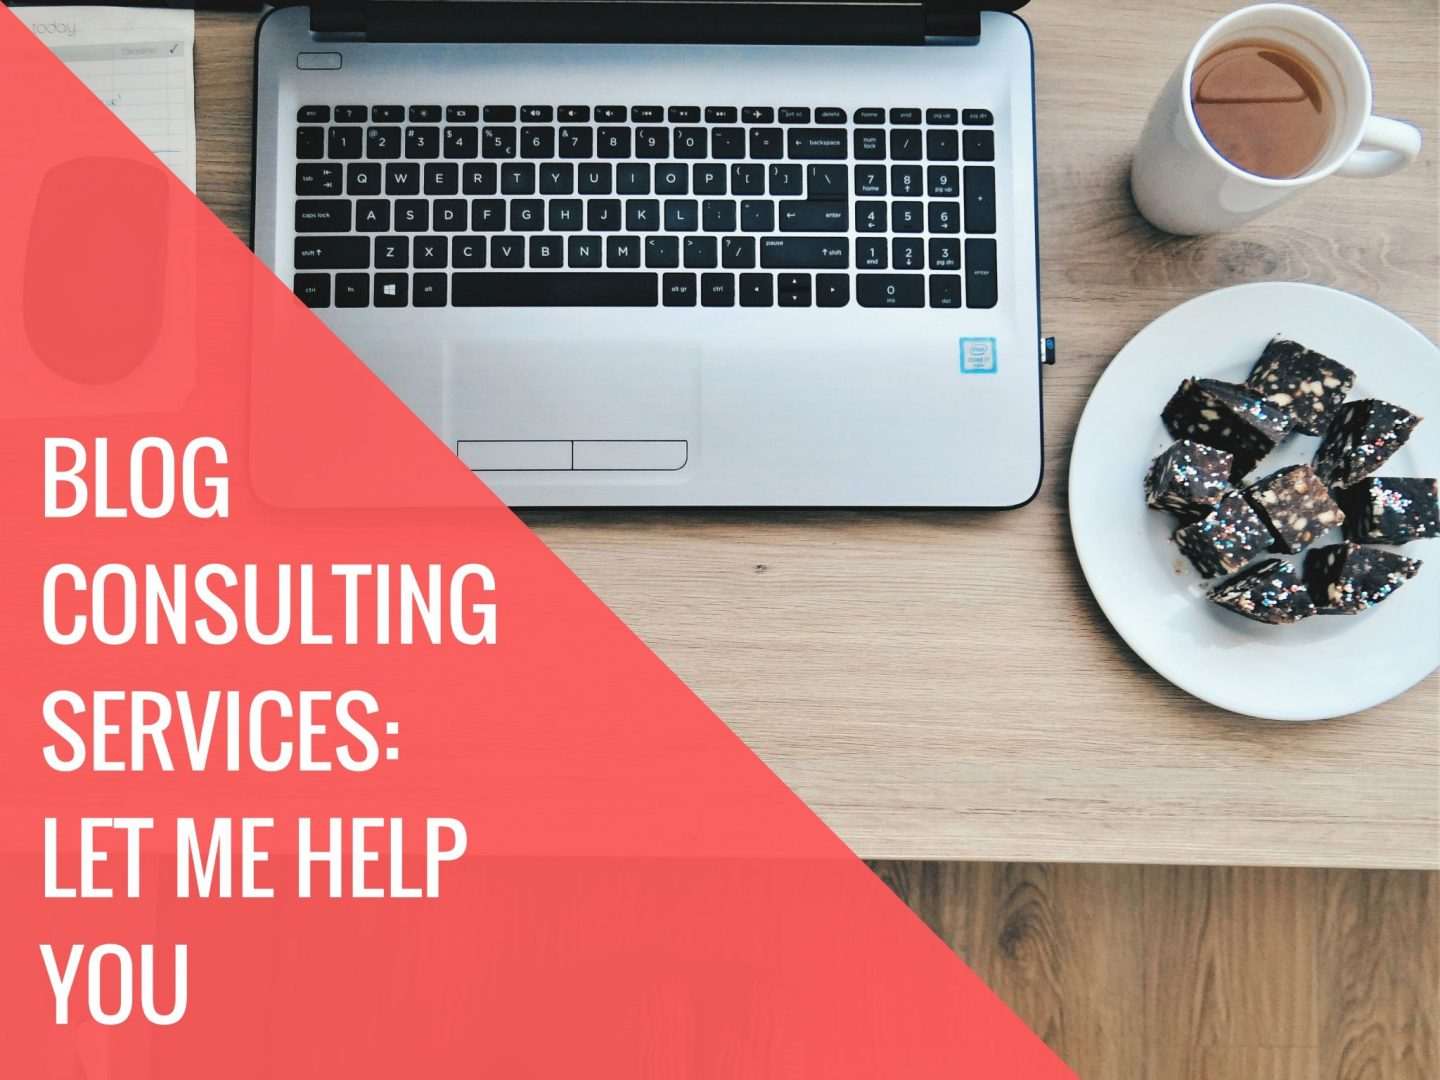 Introducing My Blog Consulting Services